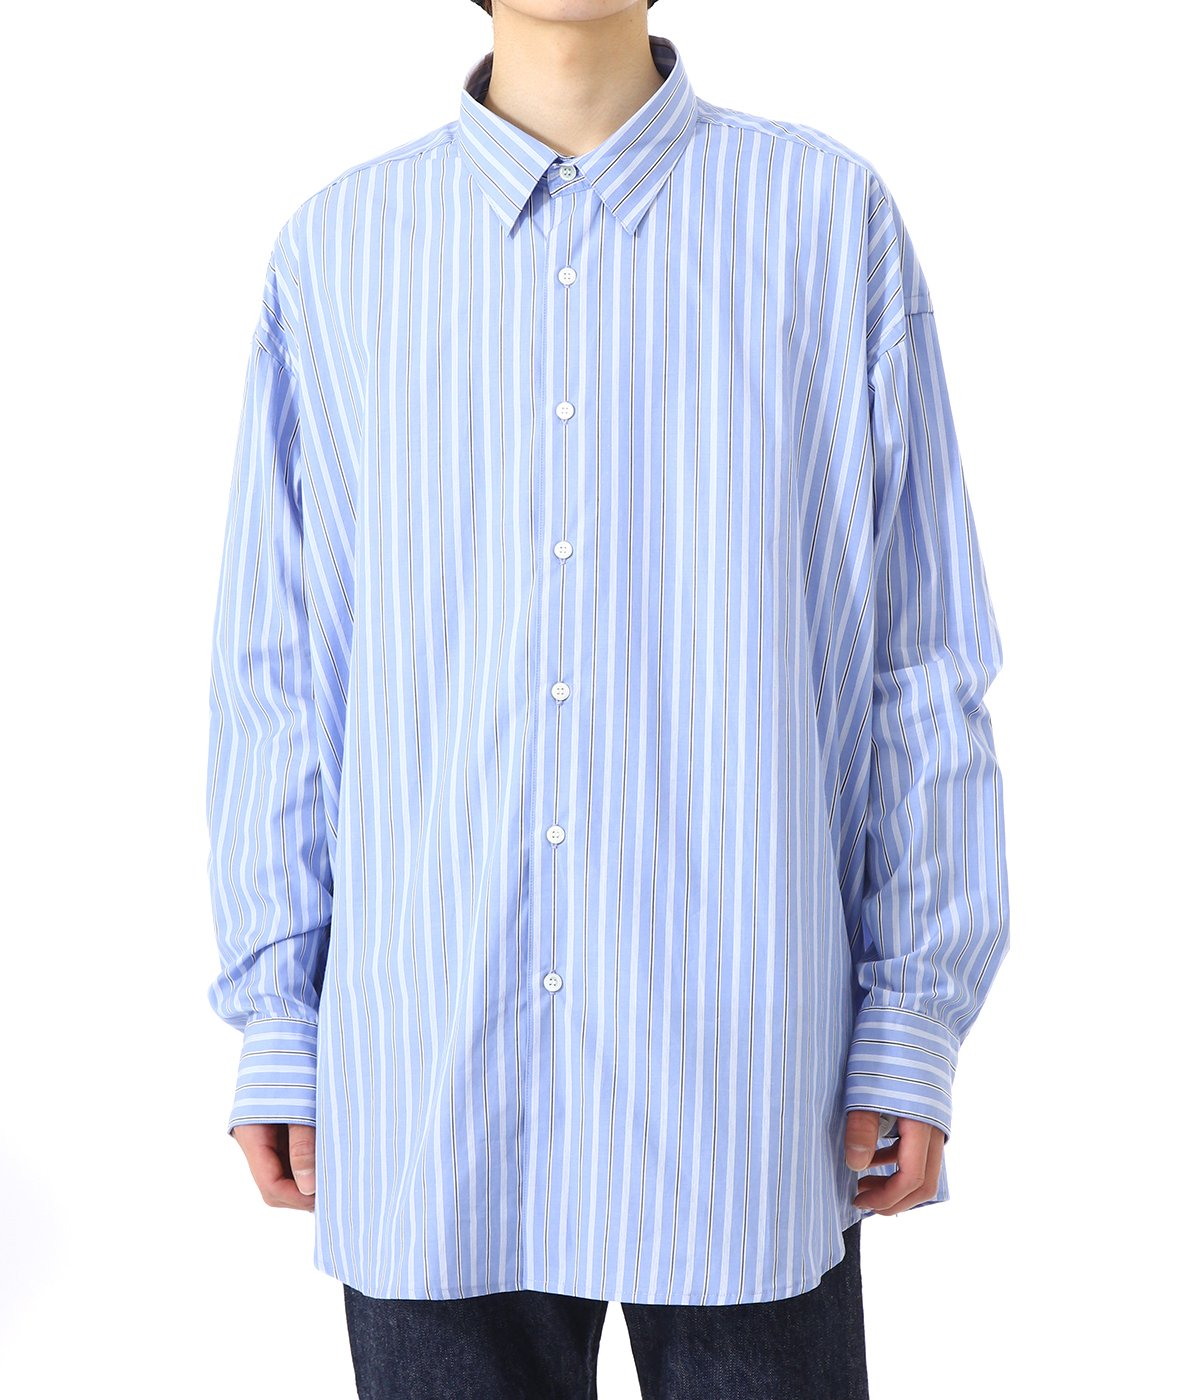 VENTILATION LONG SLEEVE SHIRT